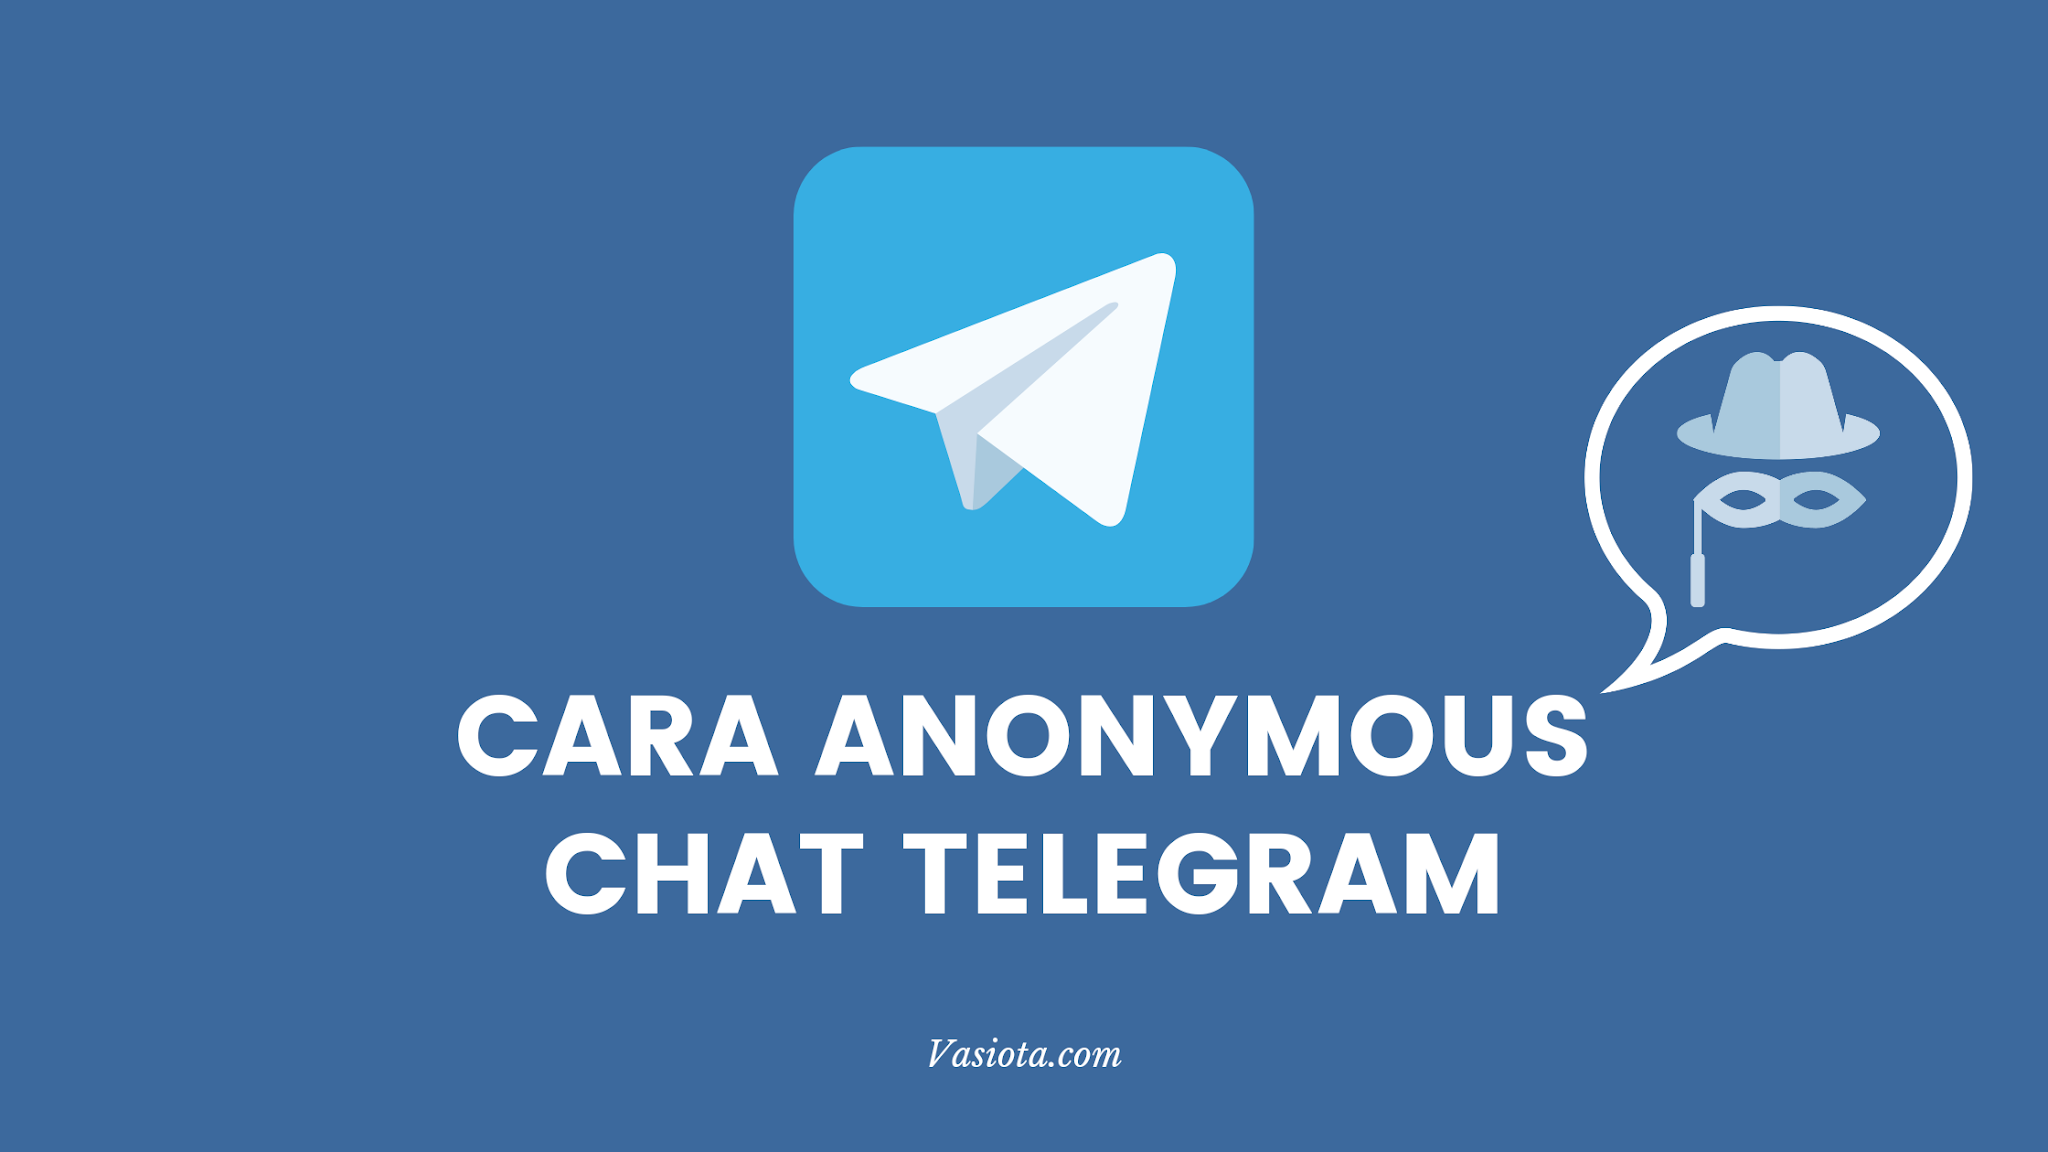 Cara Anonymous Chat Telegram